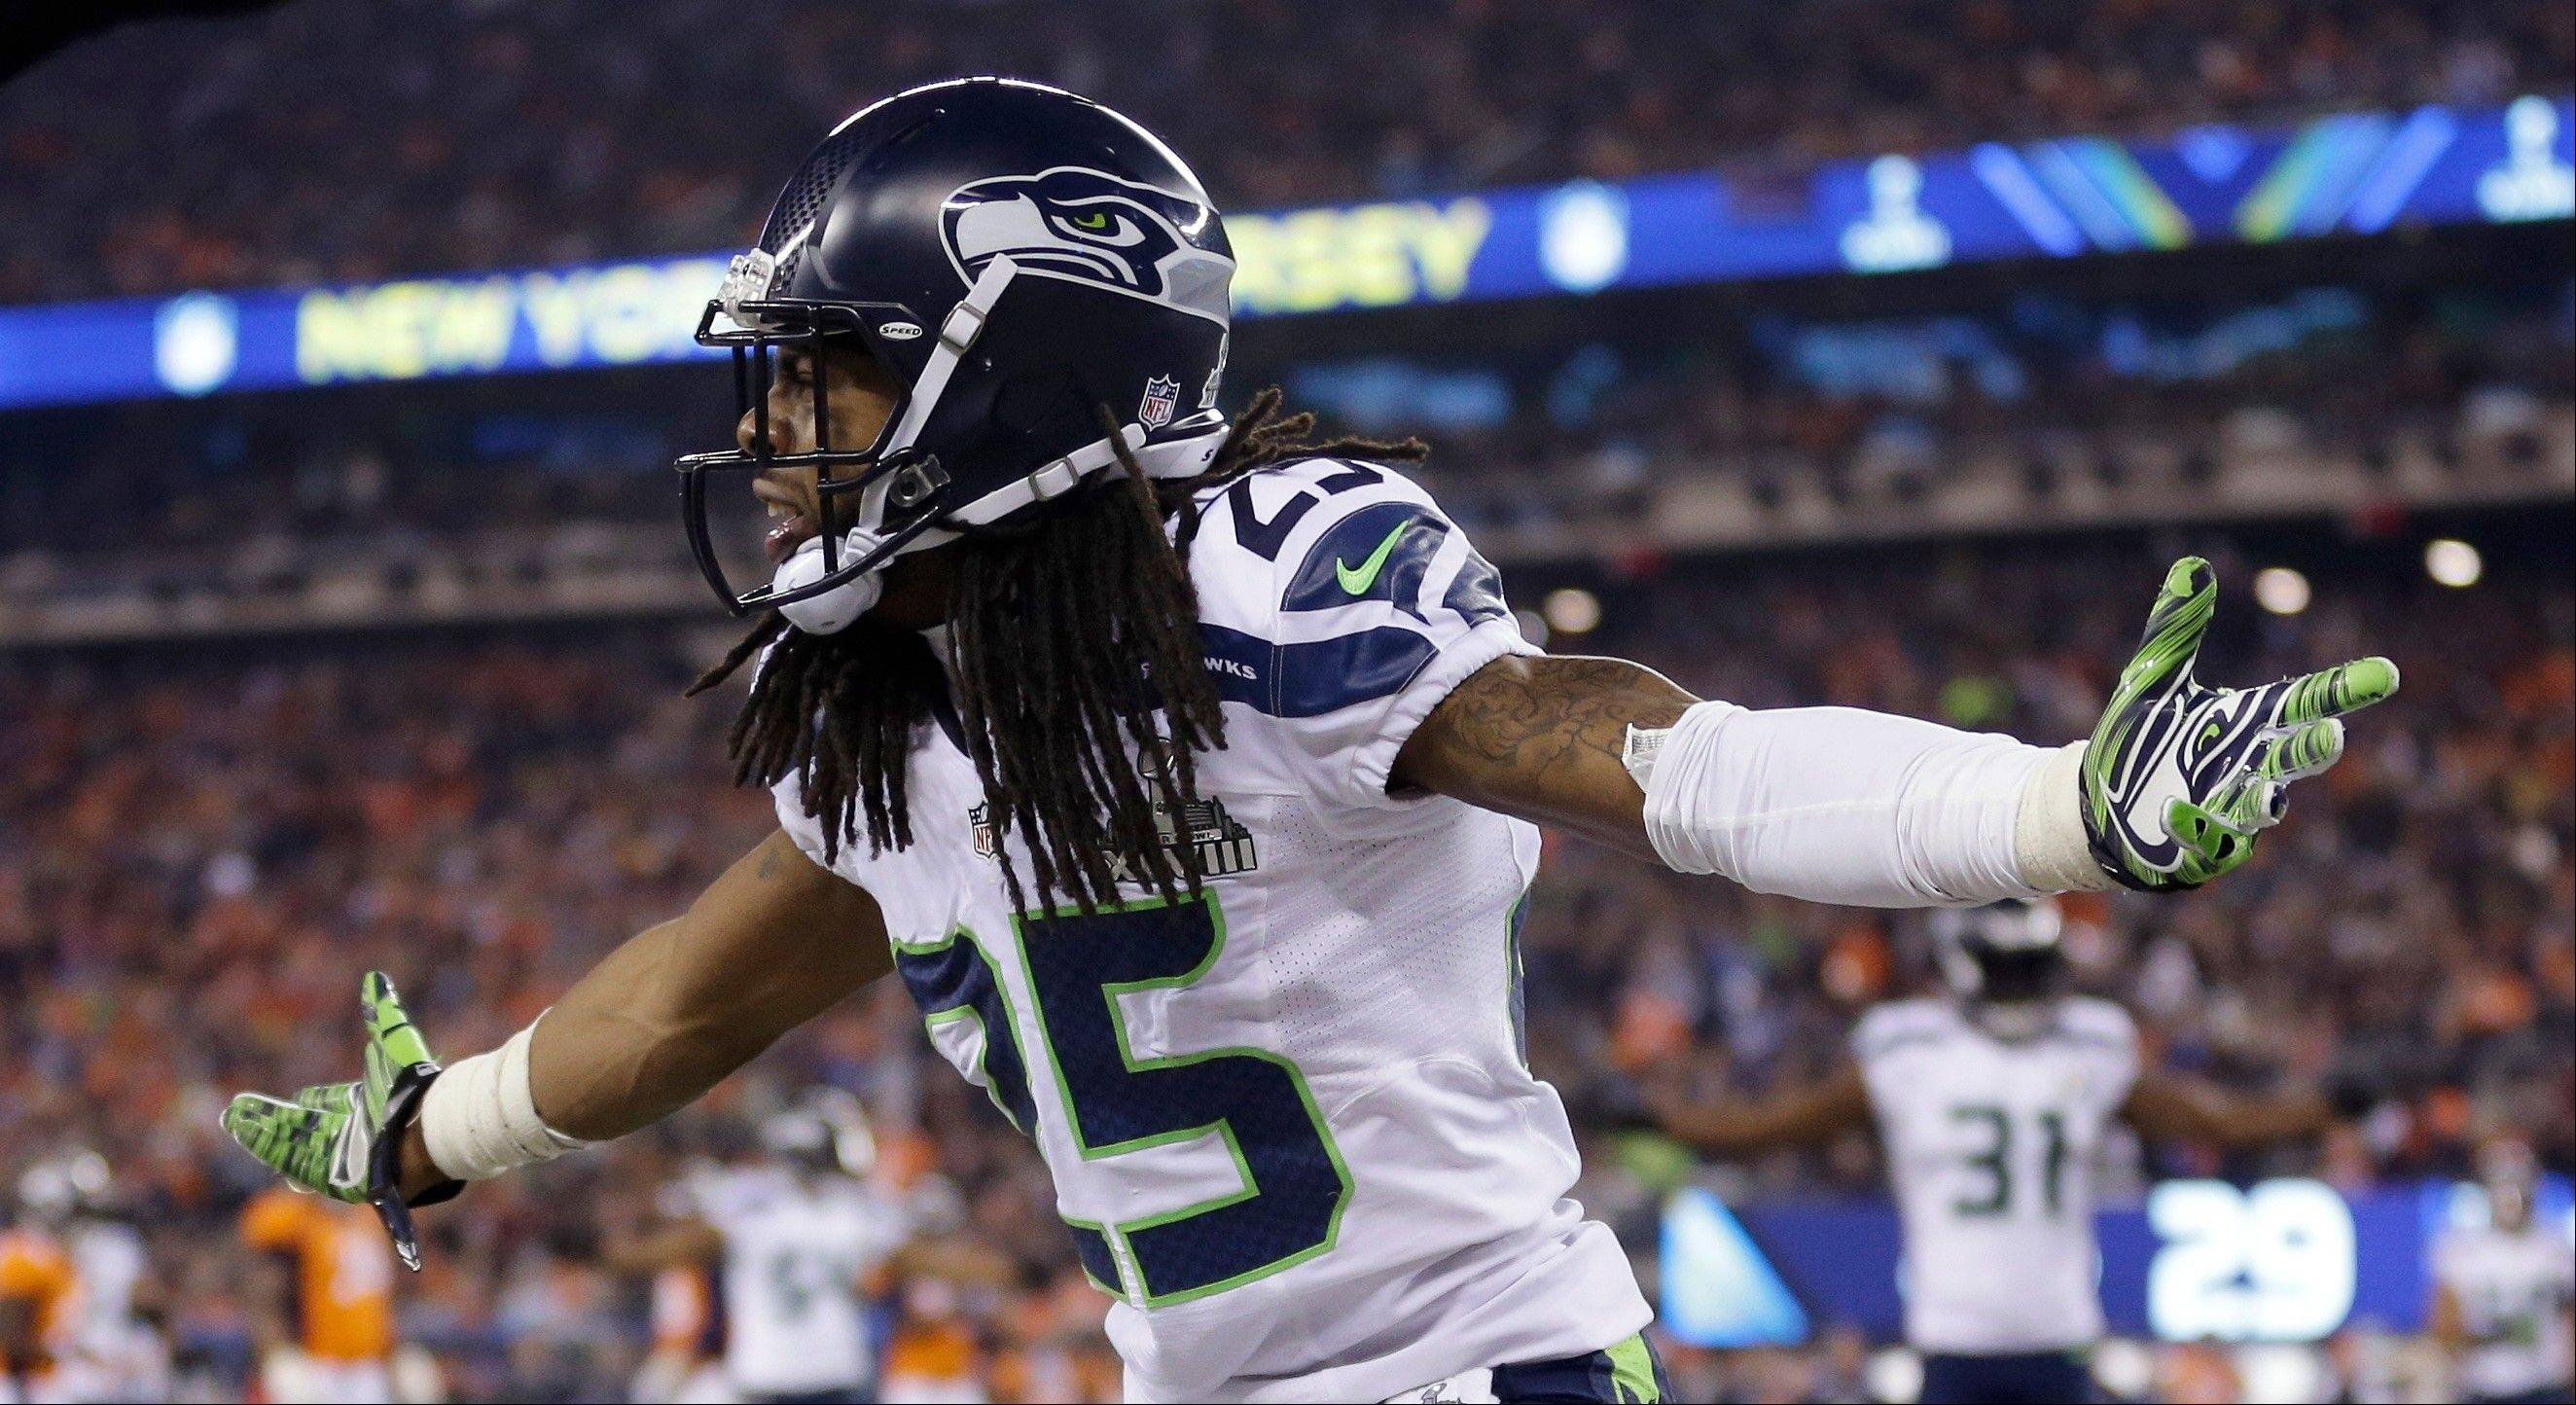 Purist Bears fans likely are shaking their heads as if they want nothing to do with outspoken Seahawks defensive back Richard Sherman. But as Mike Imrem points out, it�s just like purist Bulls fans never would have accepted Dennis Rodman ... until he began helping them embark on winning three NBA titles.